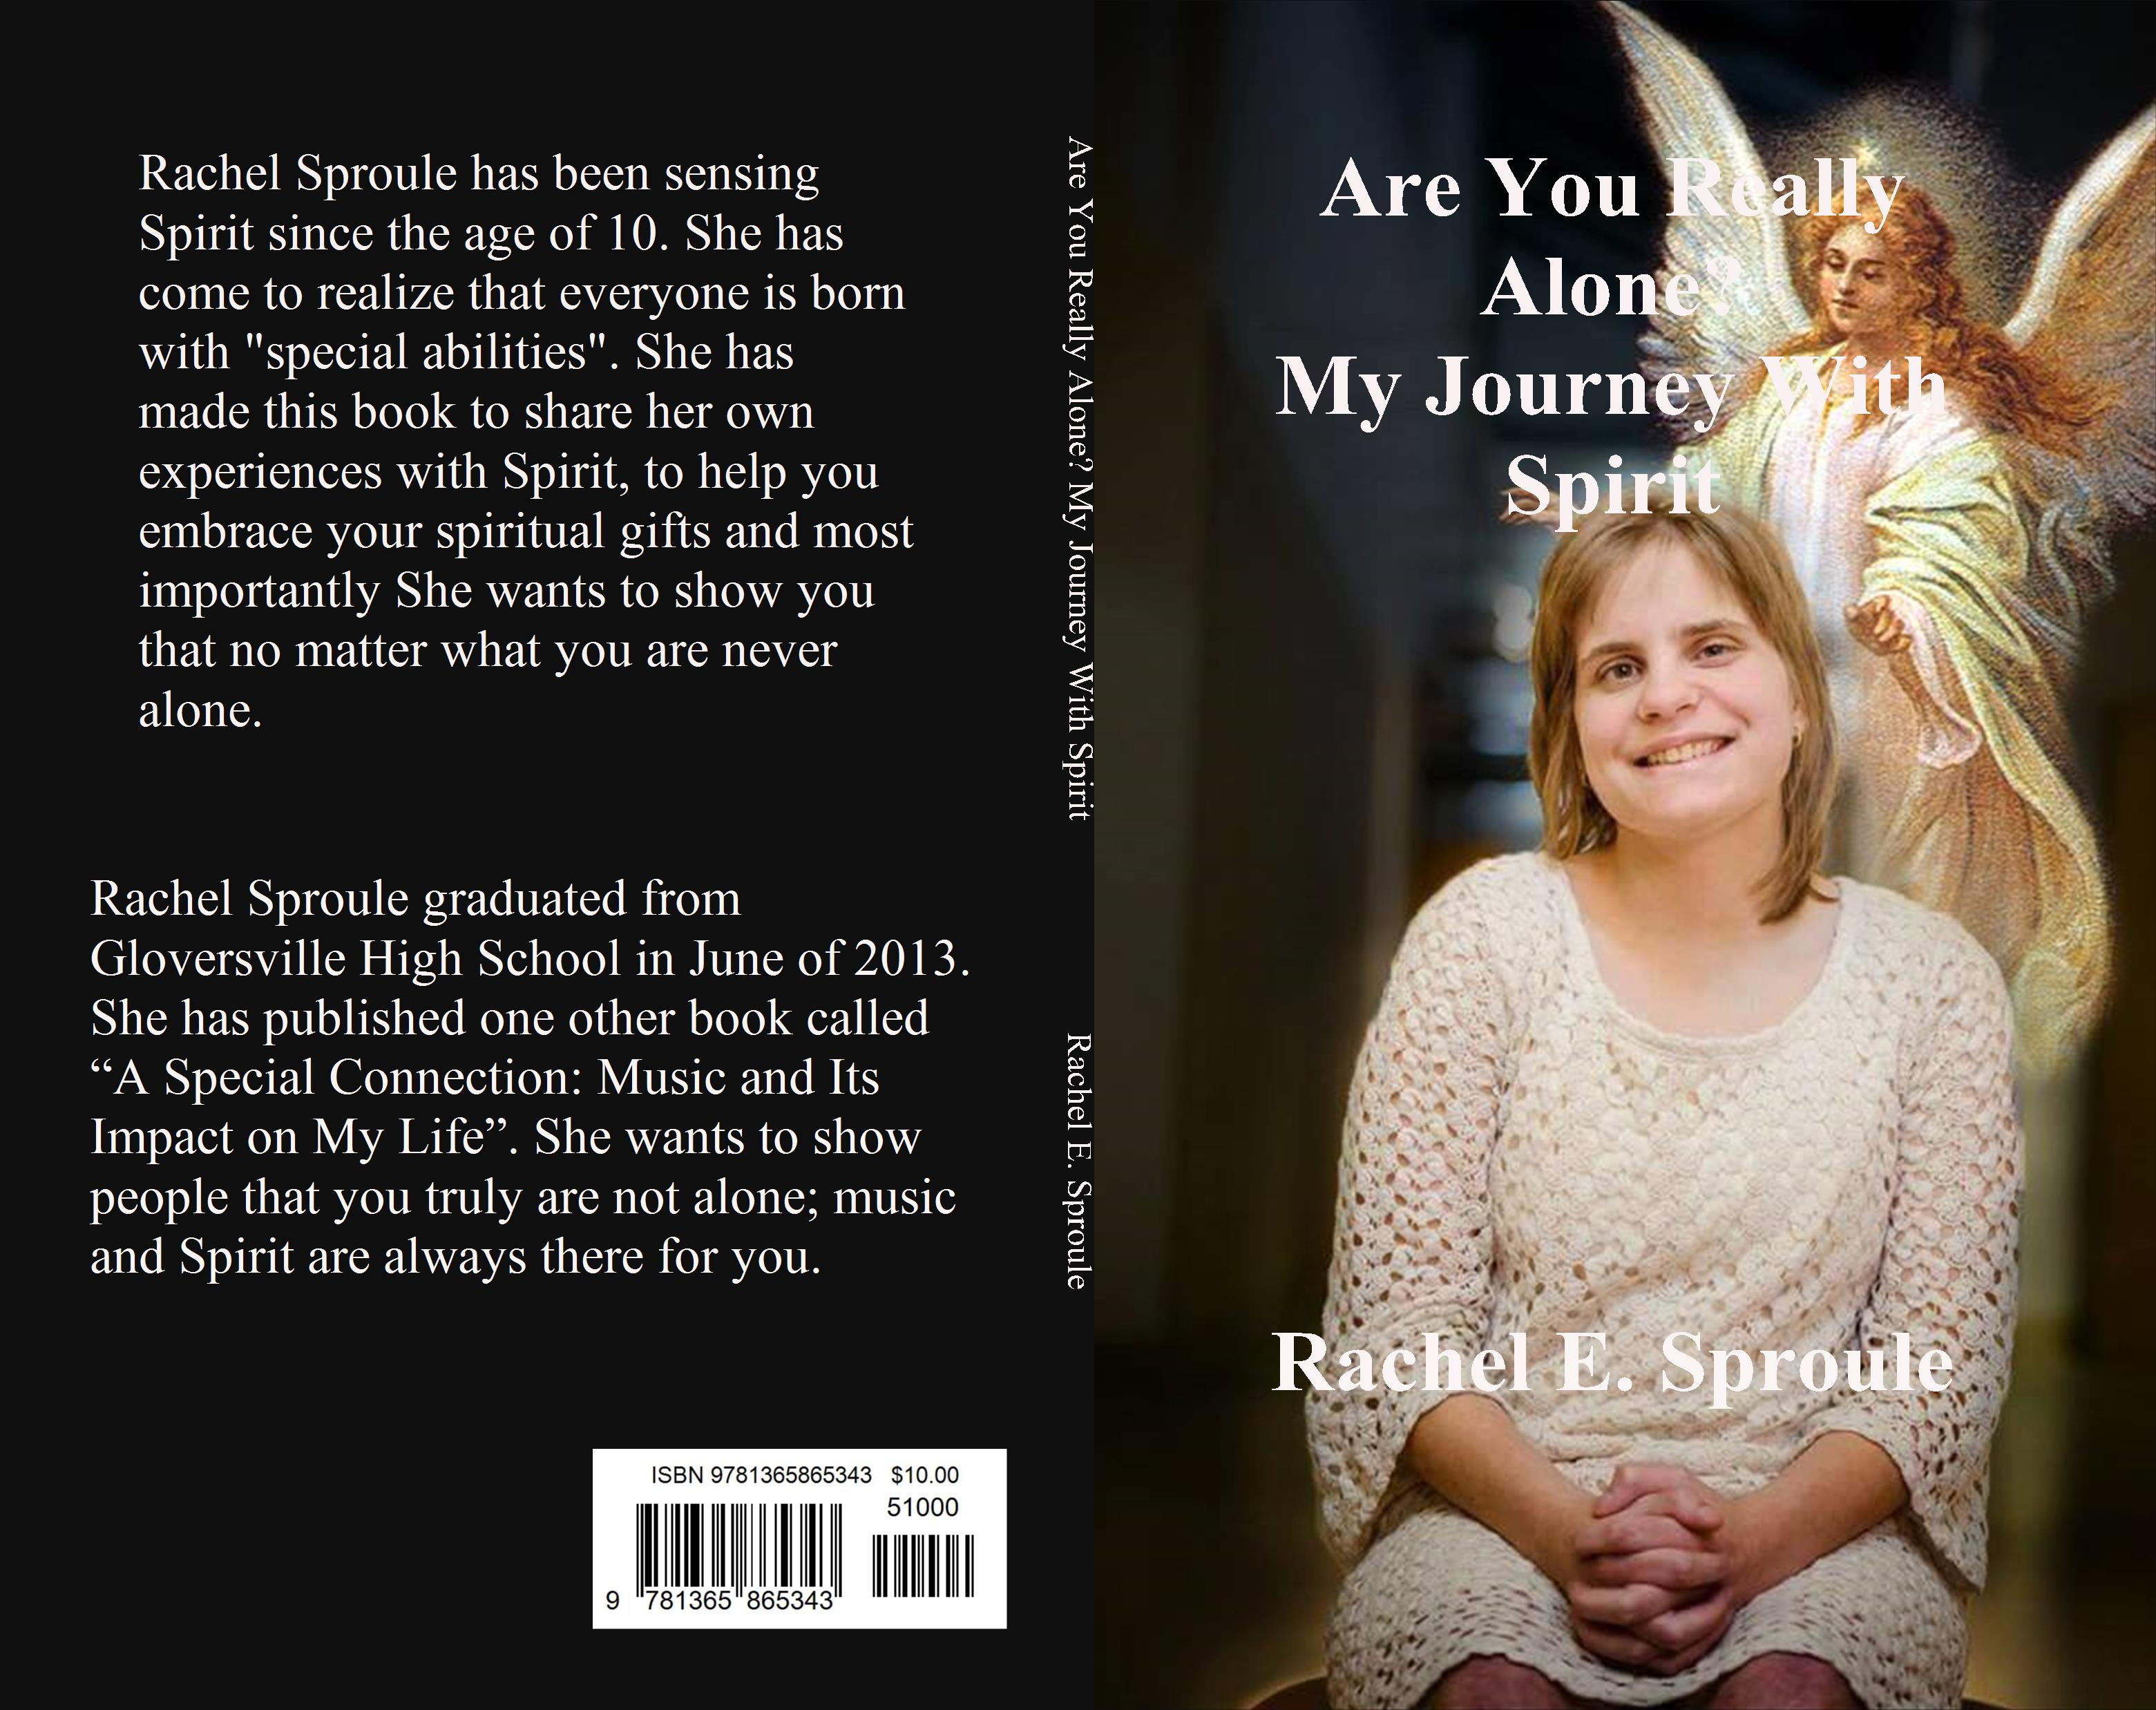 Are You Really Alone? My Journey With Spirit, an Ebook by Rachel Sproule